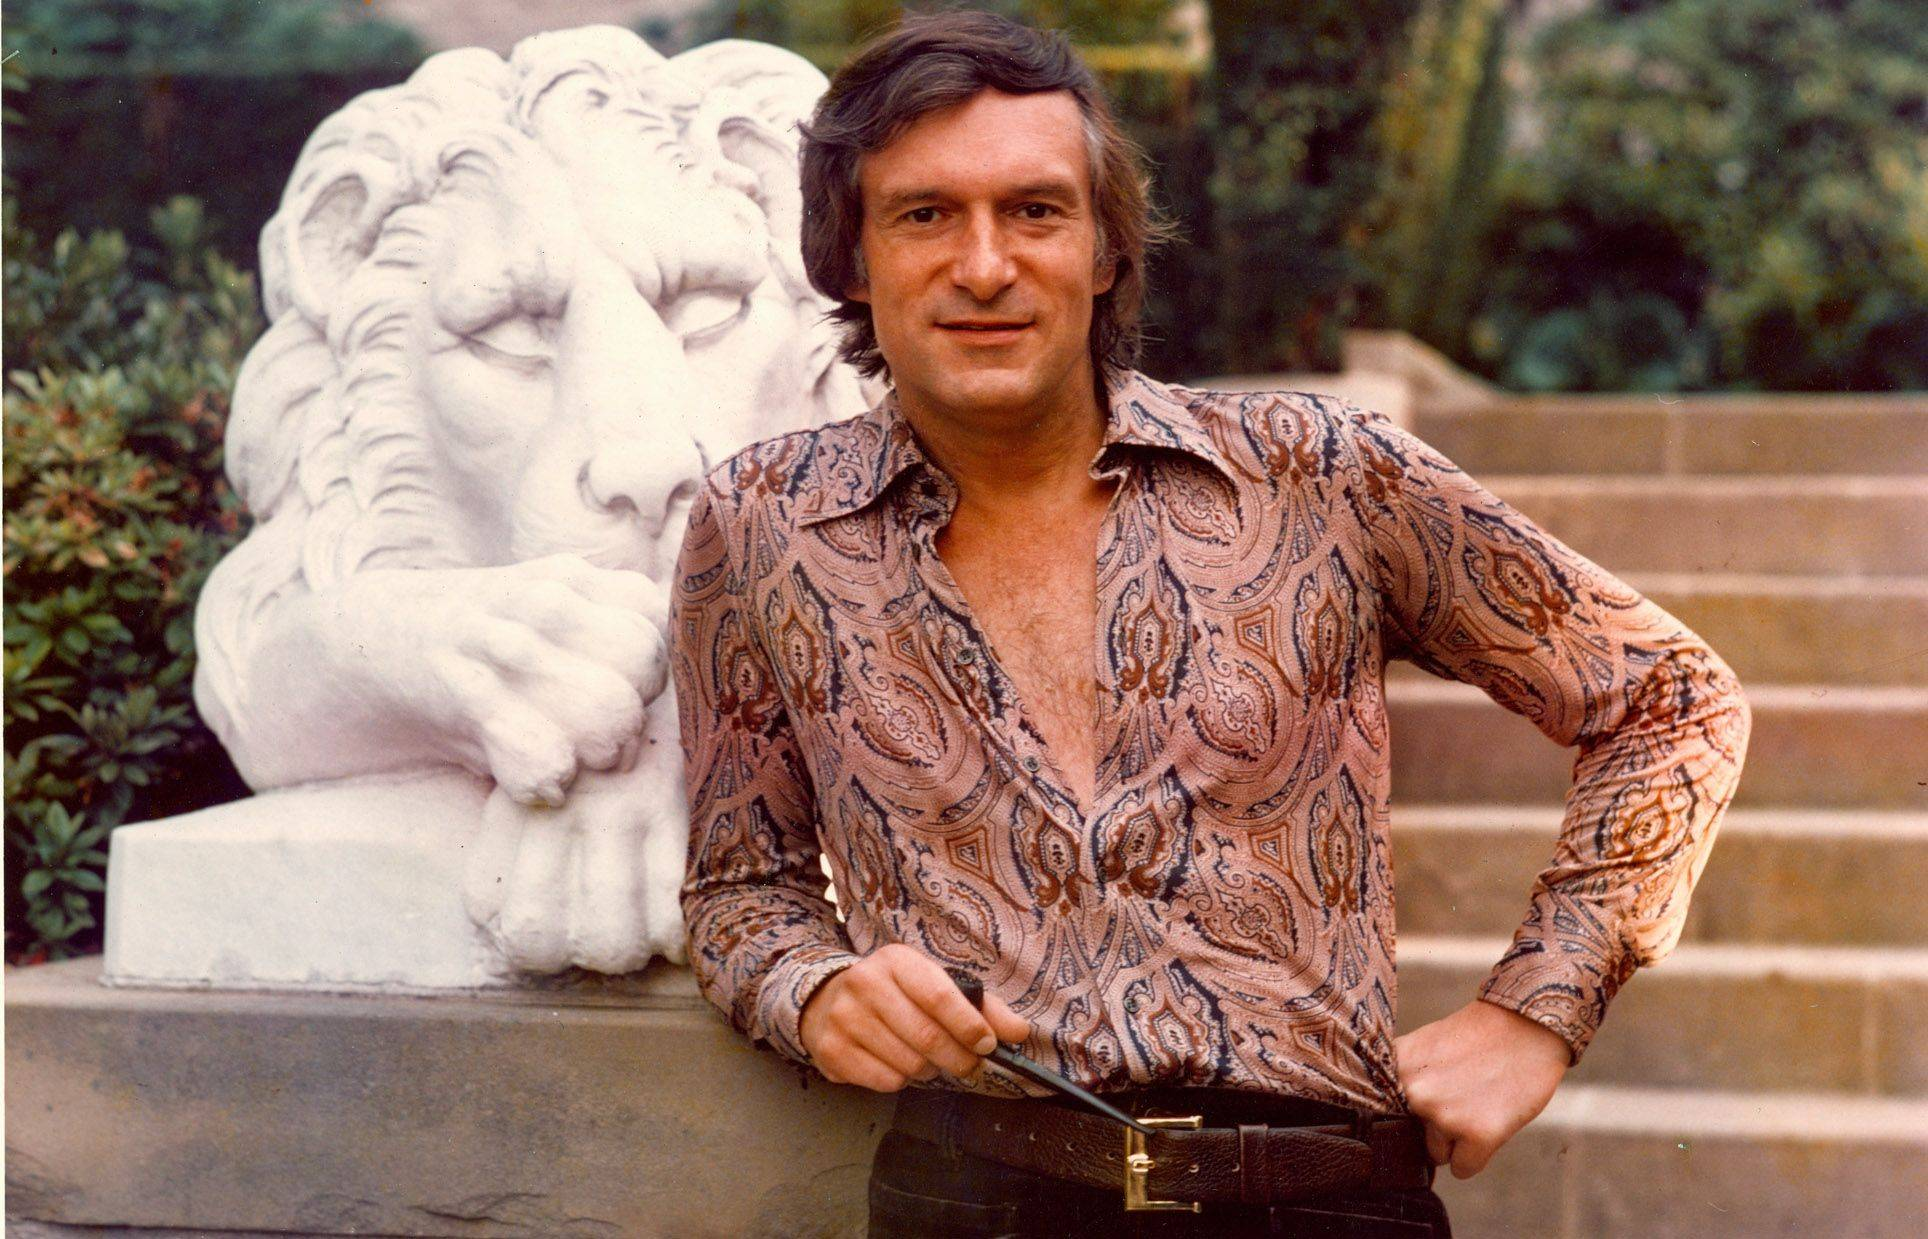 A new documentary looks at the controversial contributions of Hugh Hefner, photographed here at the Playboy mansion in the early 1970s.